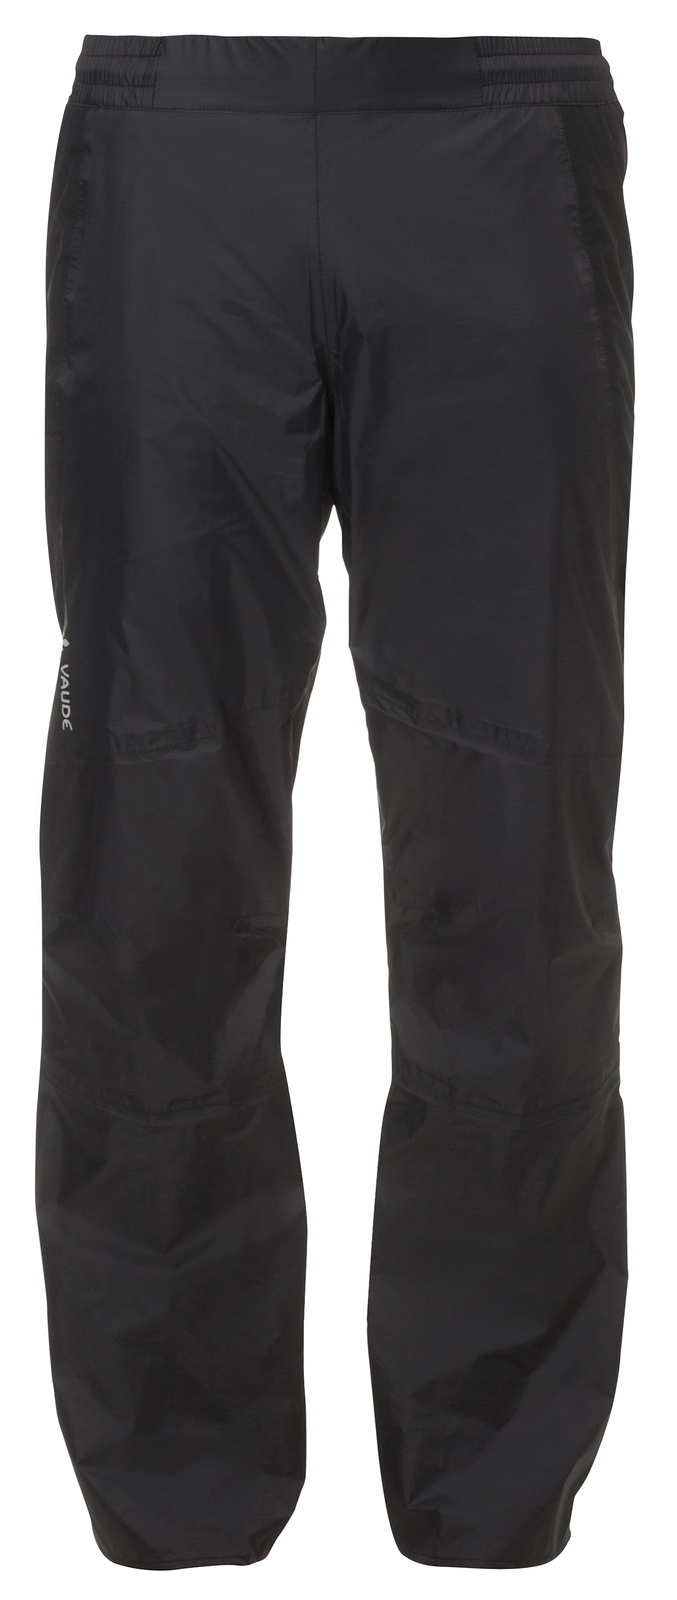 VAUDE Men´s Spray Pants III black Größe XXL-Long - schneider-sports